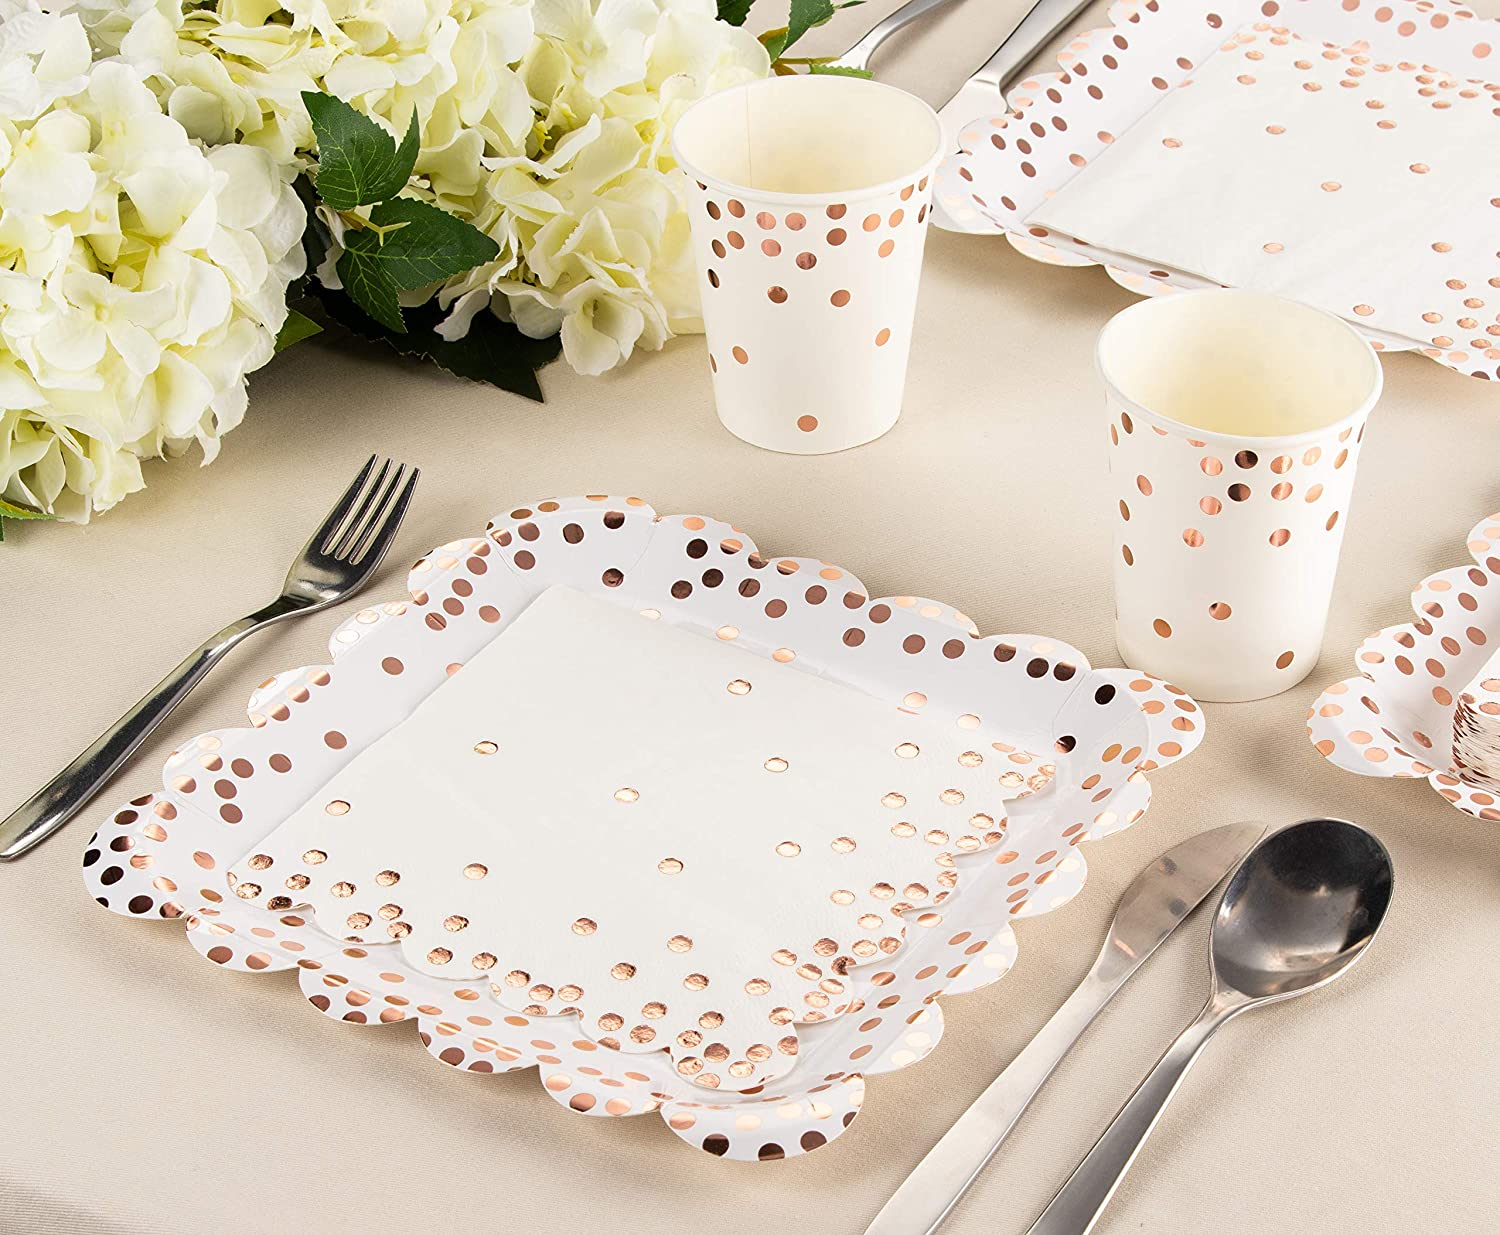 Wedding Party Supplies 50-Pack Disposable Napkins with Rose Gold Foil Polka Dot Confetti and Scalloped Edges Rose Gold Napkins Luncheon Size Folded 6.5 x 6.5 Inches 3-Ply